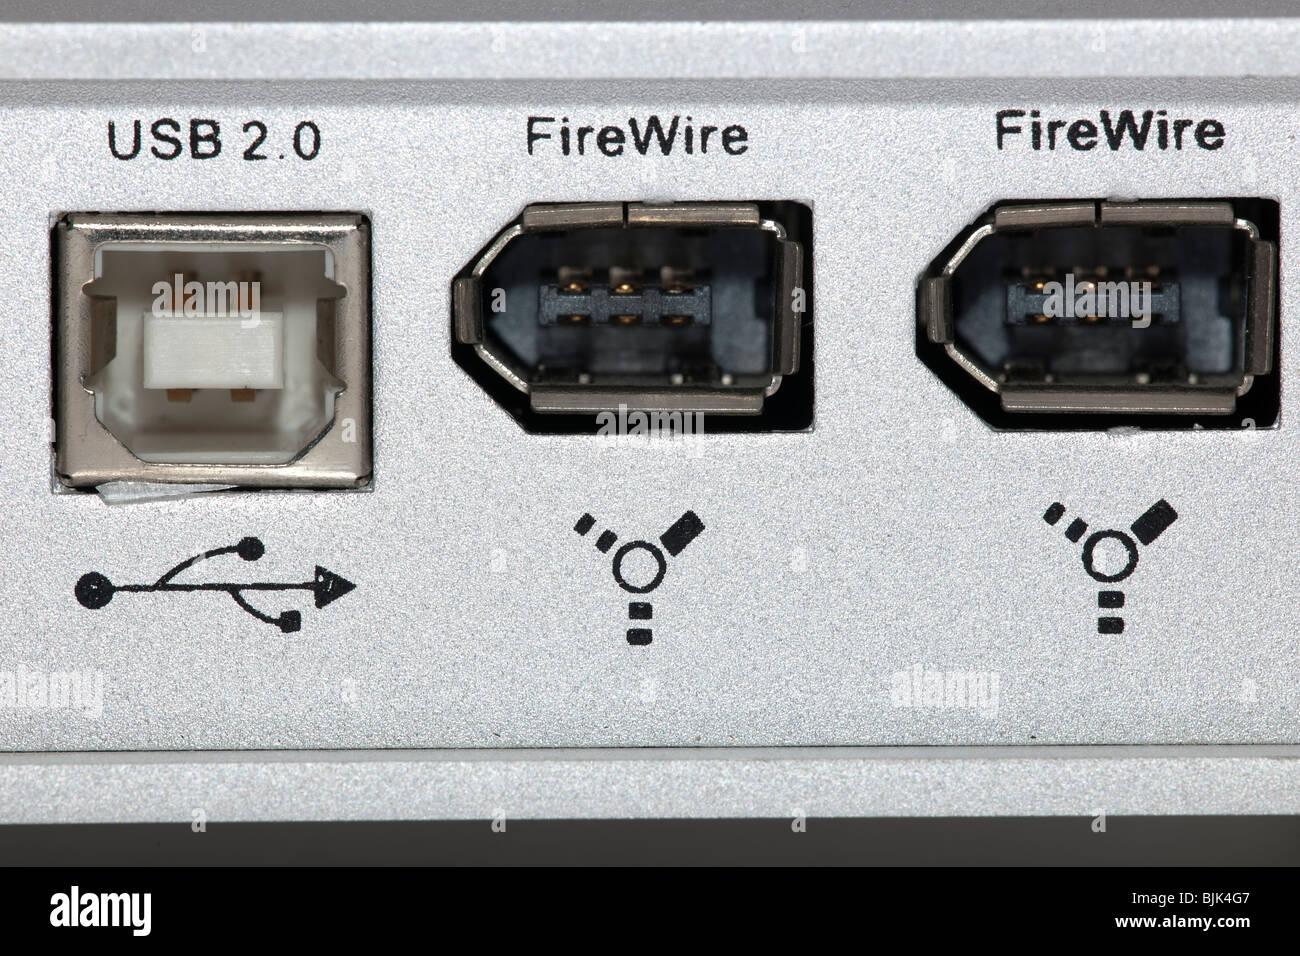 Usb 2.0 and two firewire ports Stock Photo: 28694855 - Alamy